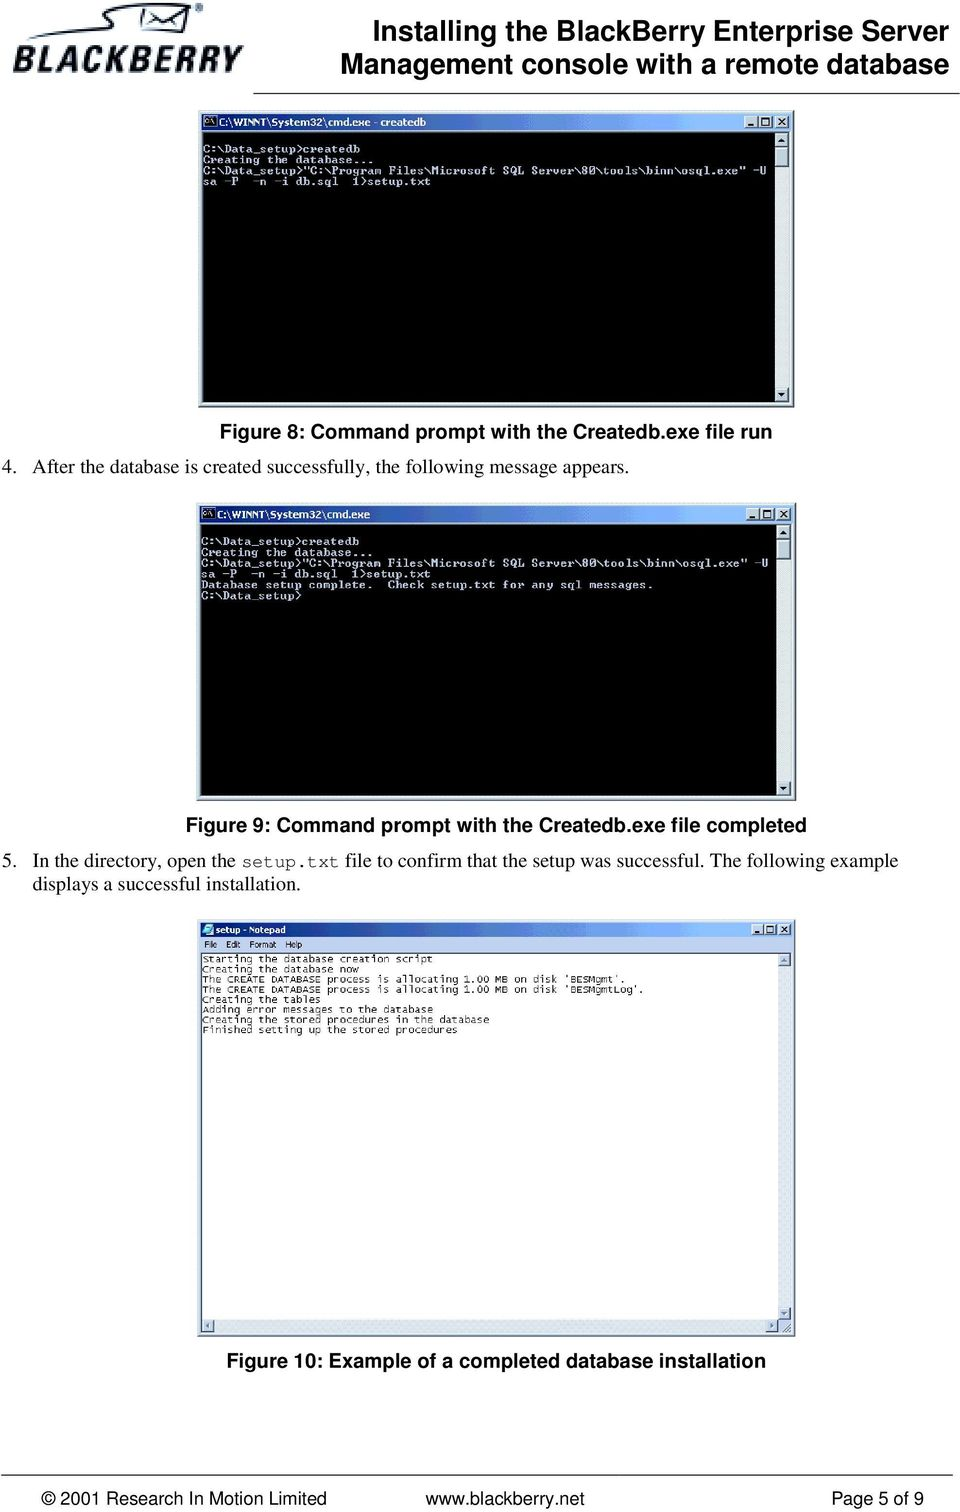 Figure 9: Command prompt with the Createdb.exe file completed 5. In the directory, open the setup.